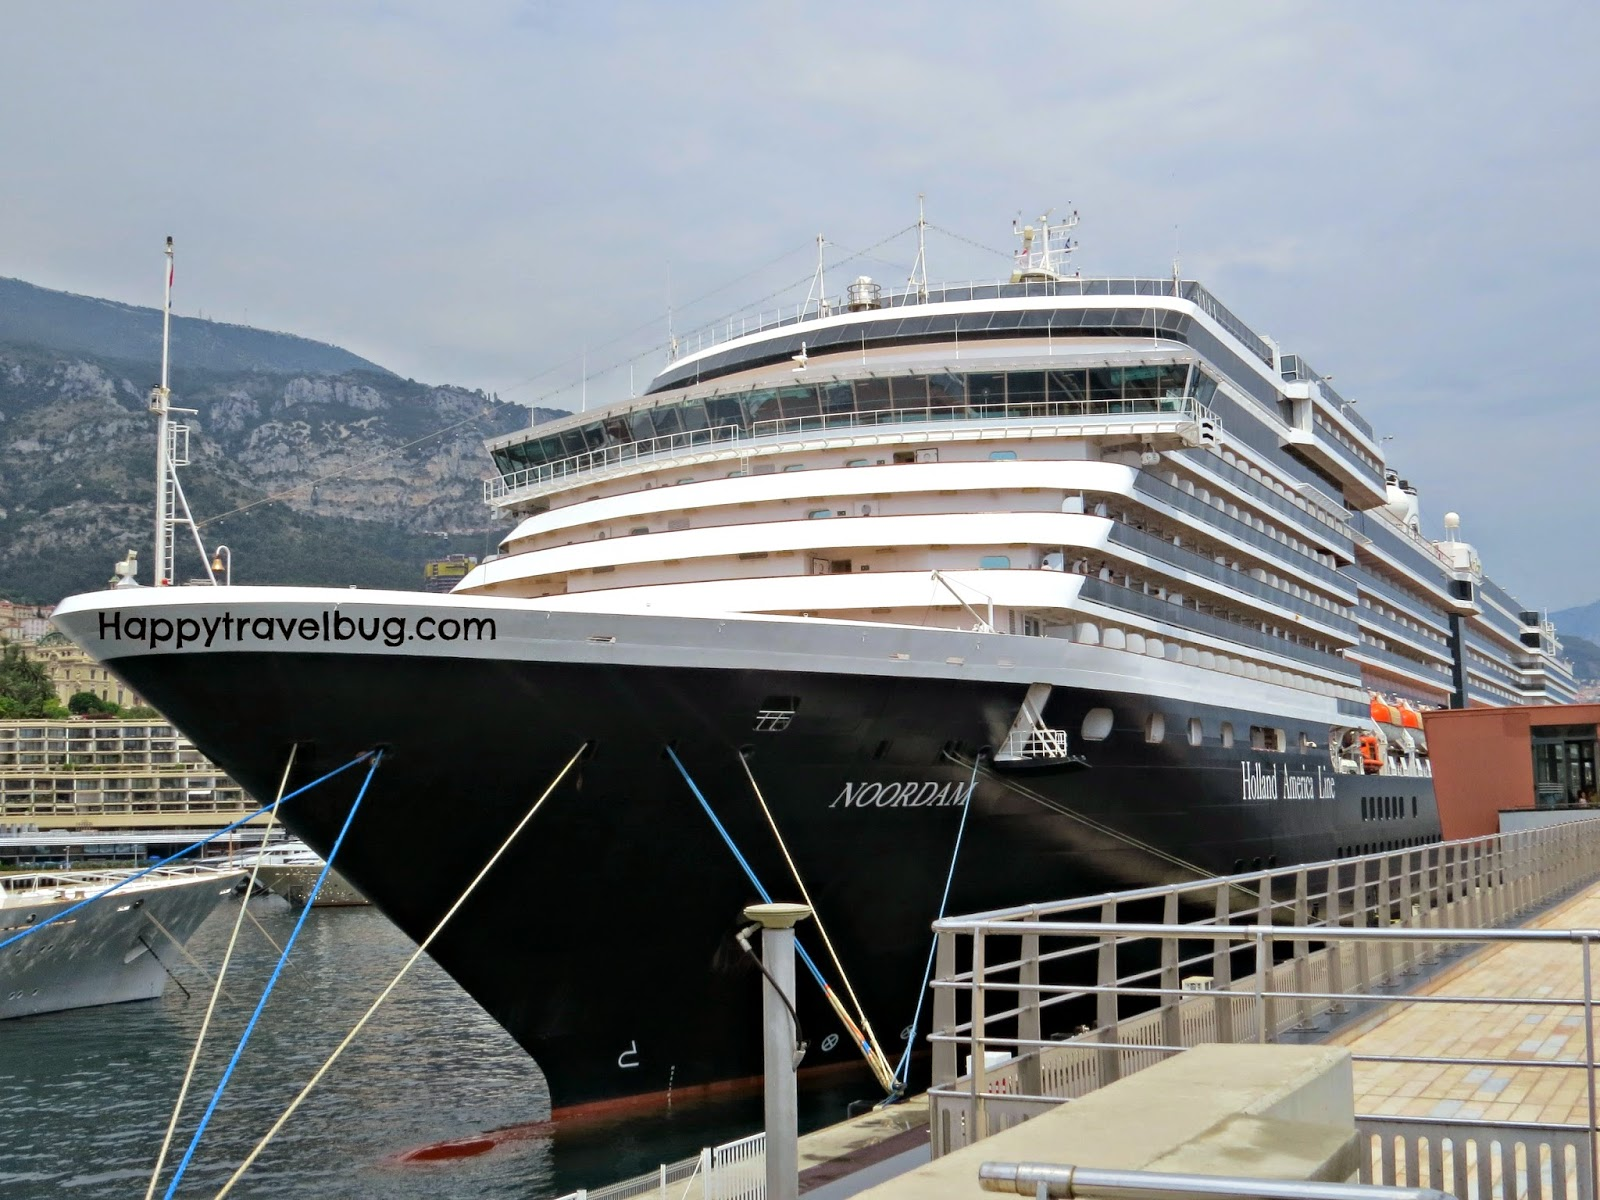 The Noordam cruise ship with Holland America